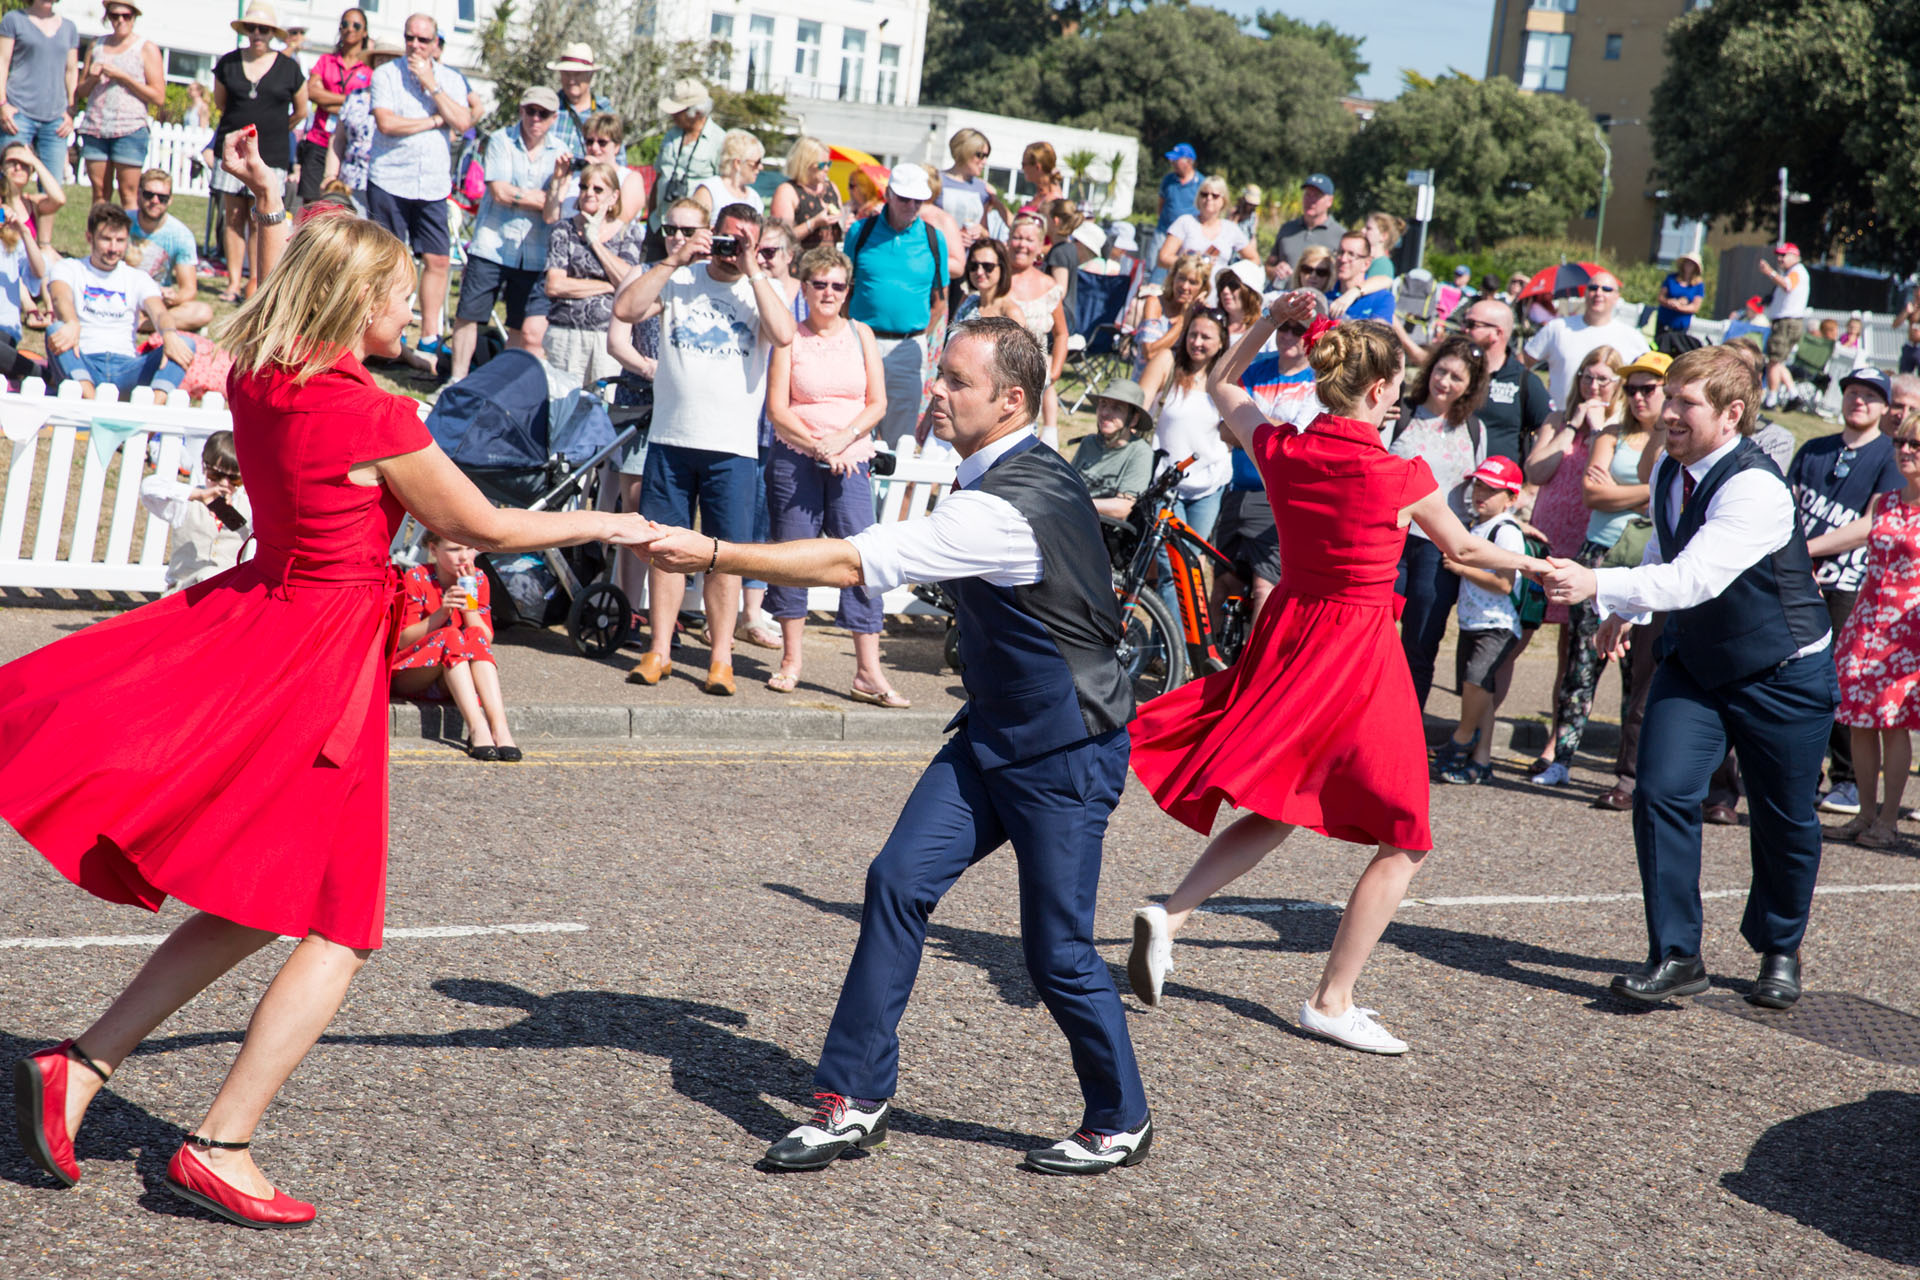 Vintage dancers at the Bournemouth Air Festival